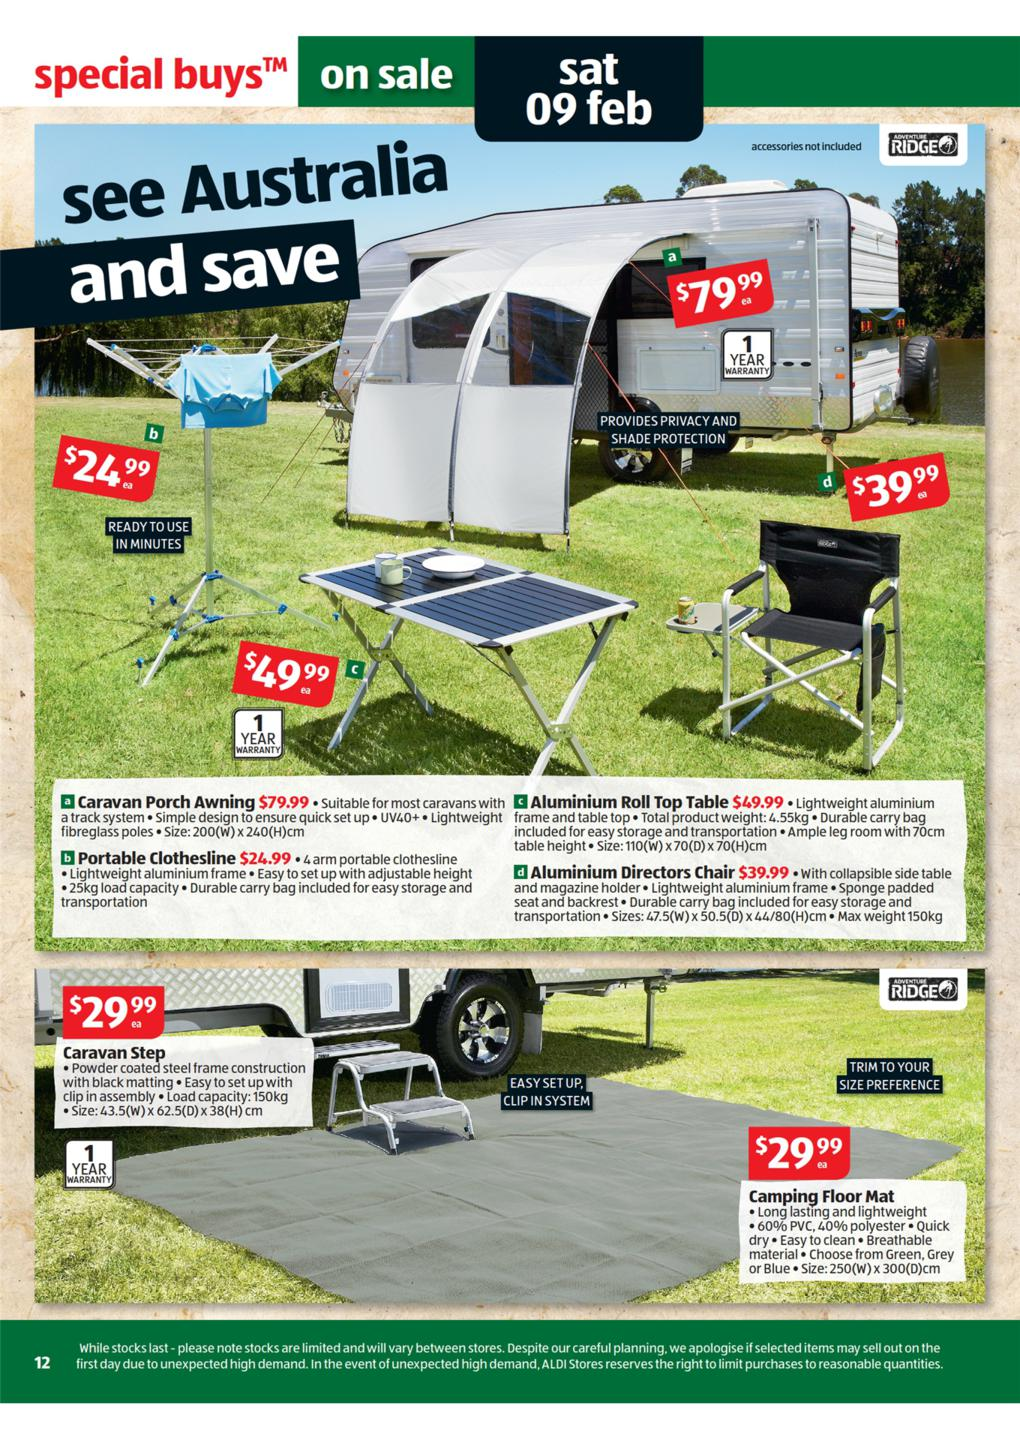 portable directors chair custom beach chairs aldi catalogue - special buys wk 6 2013 page 12